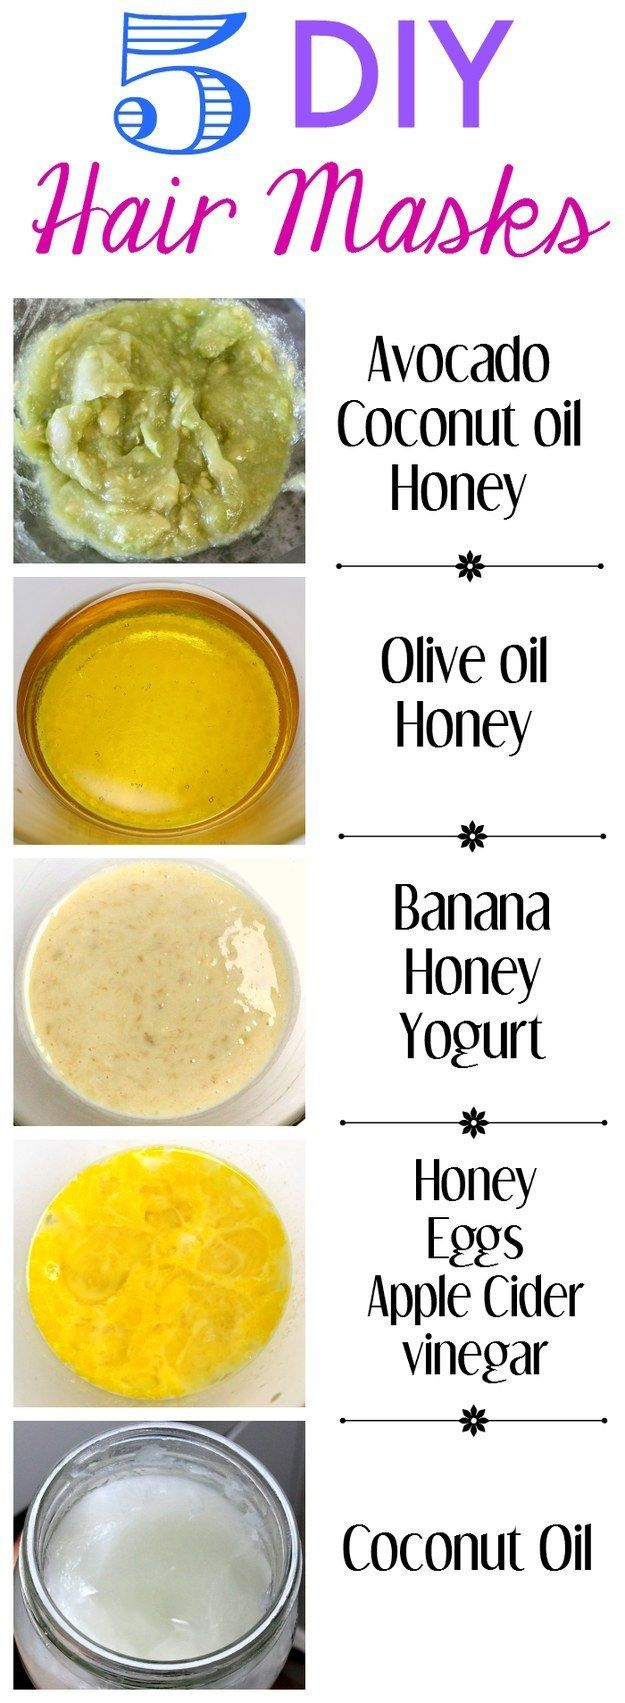 9  5 DIY Hair Masks